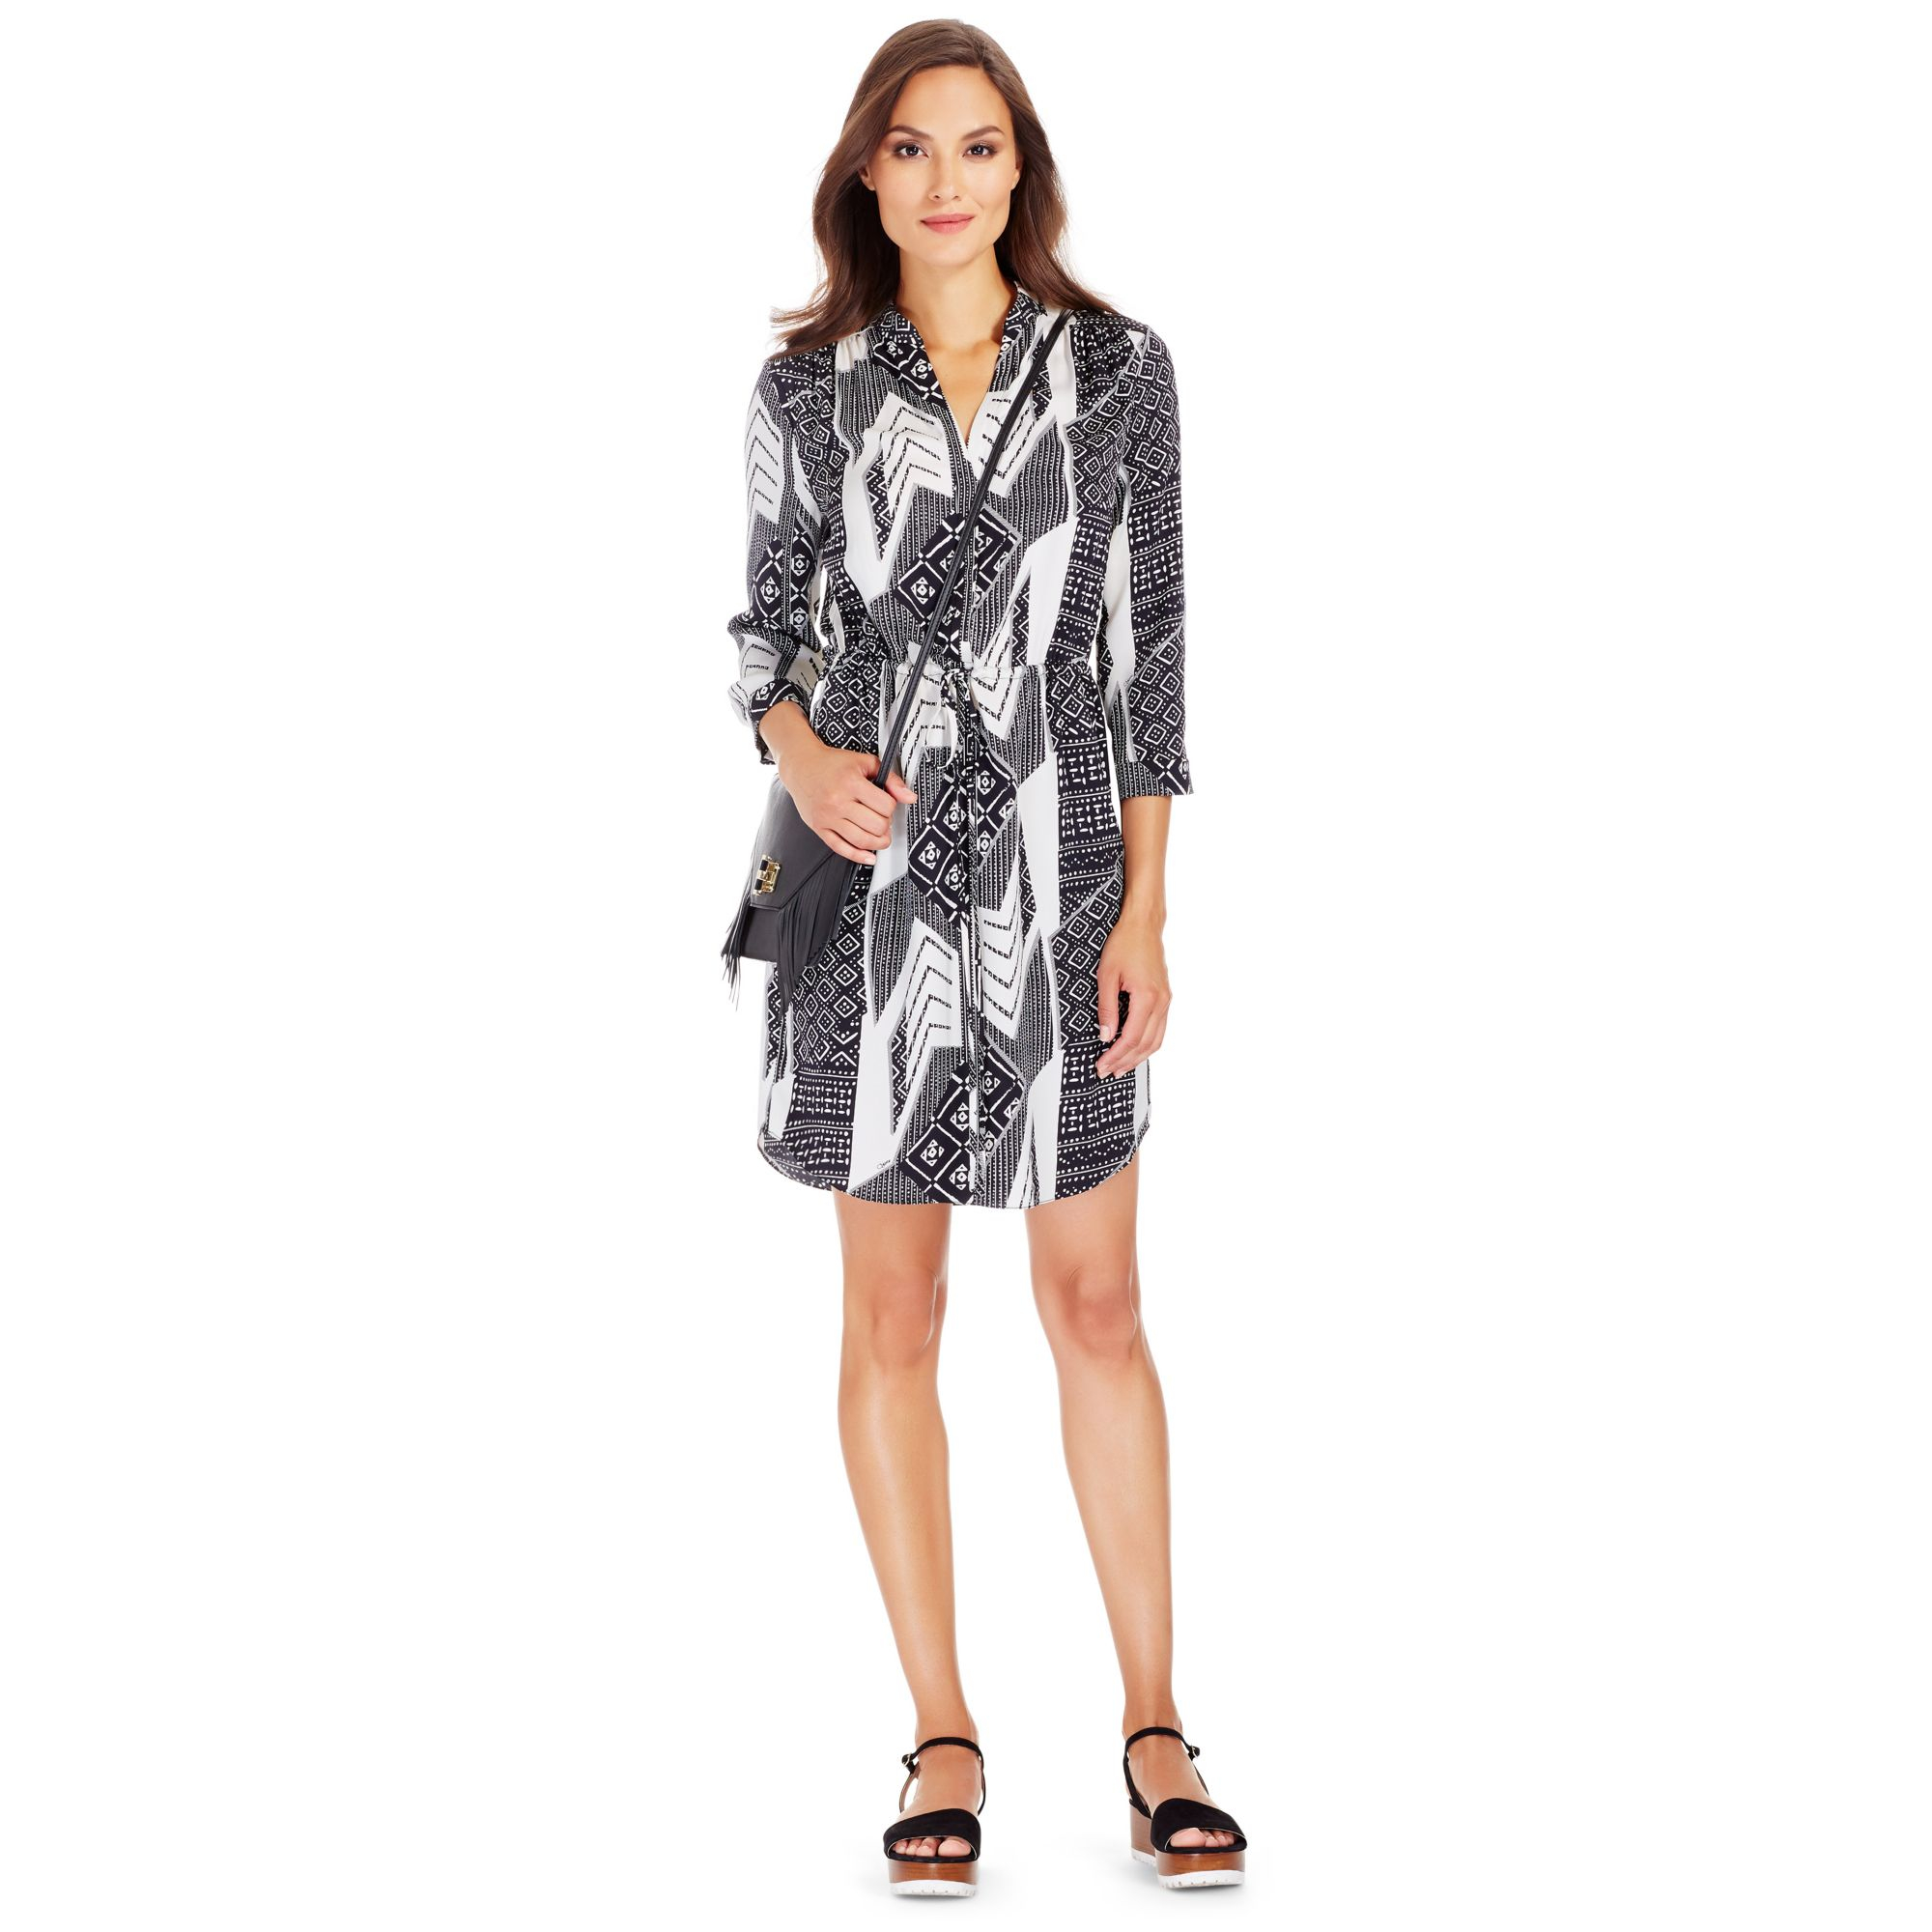 Diane von furstenberg freya silk shirt dress lyst for Diane von furstenberg clothes